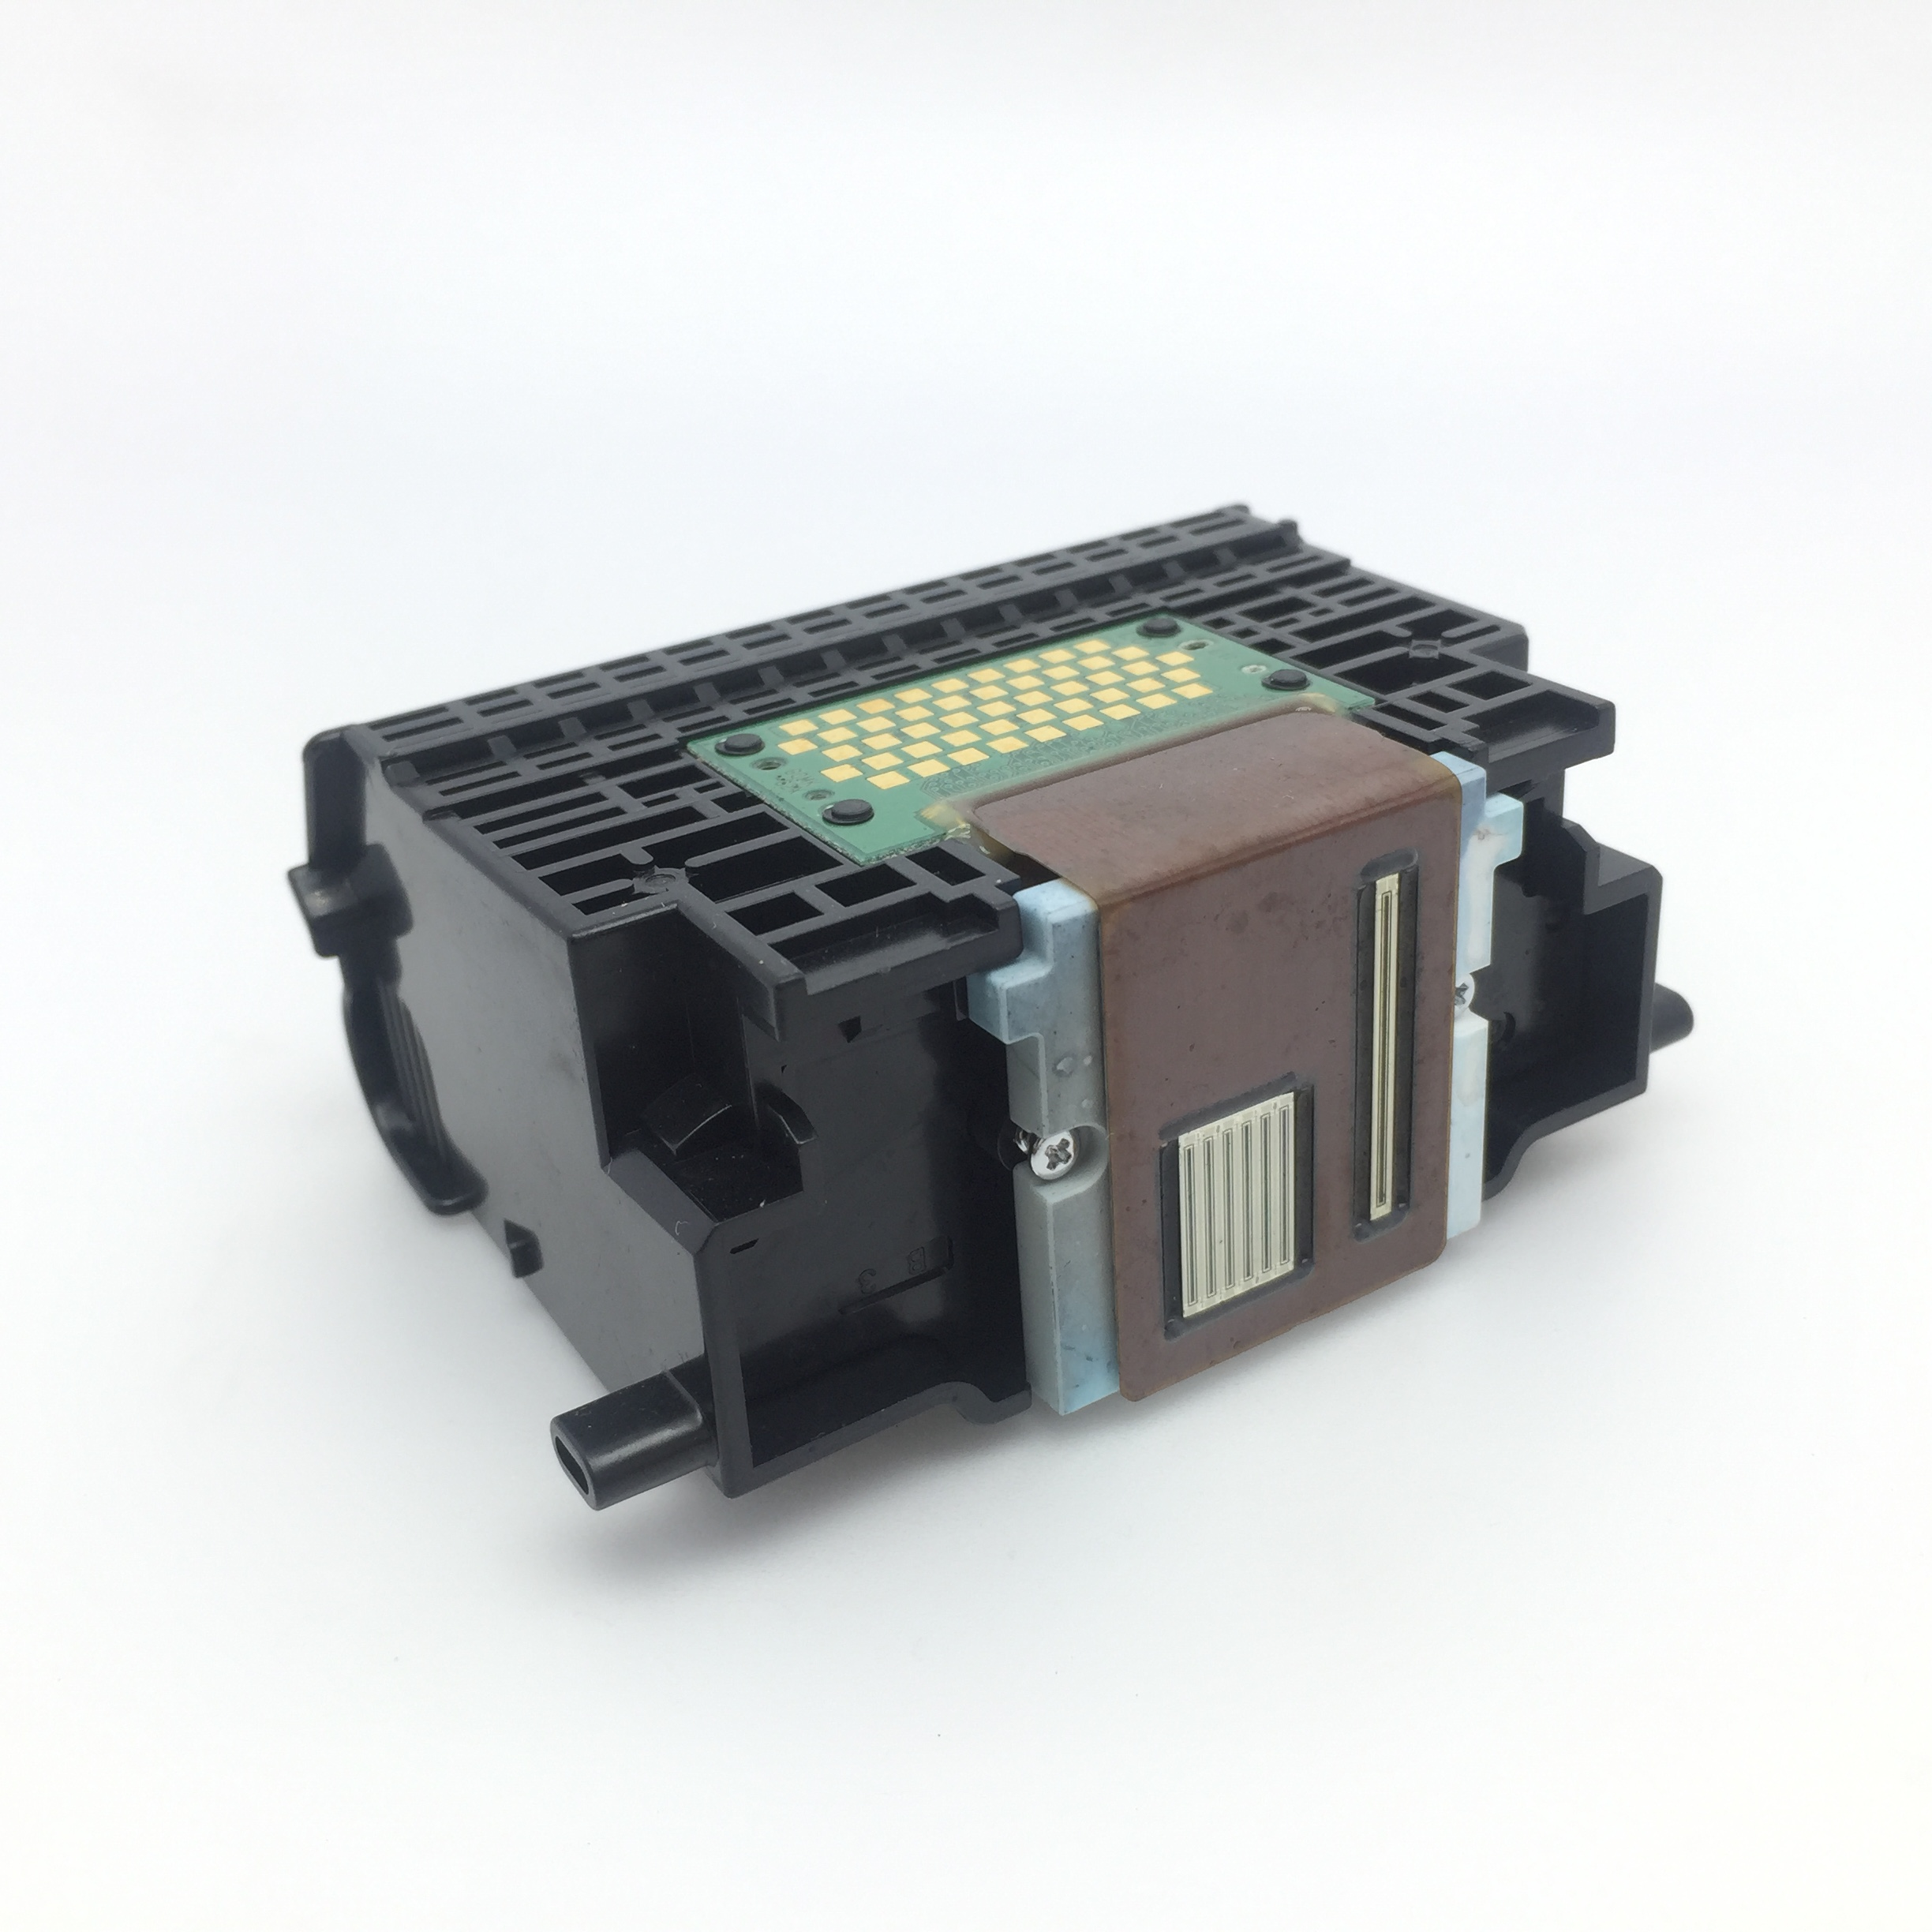 Good Logistics Free Shipping PRINT HEAD QY6-0061 Refurbished printhead for Canon Printer iP5200 MP800 MP830 iP4300 MP600